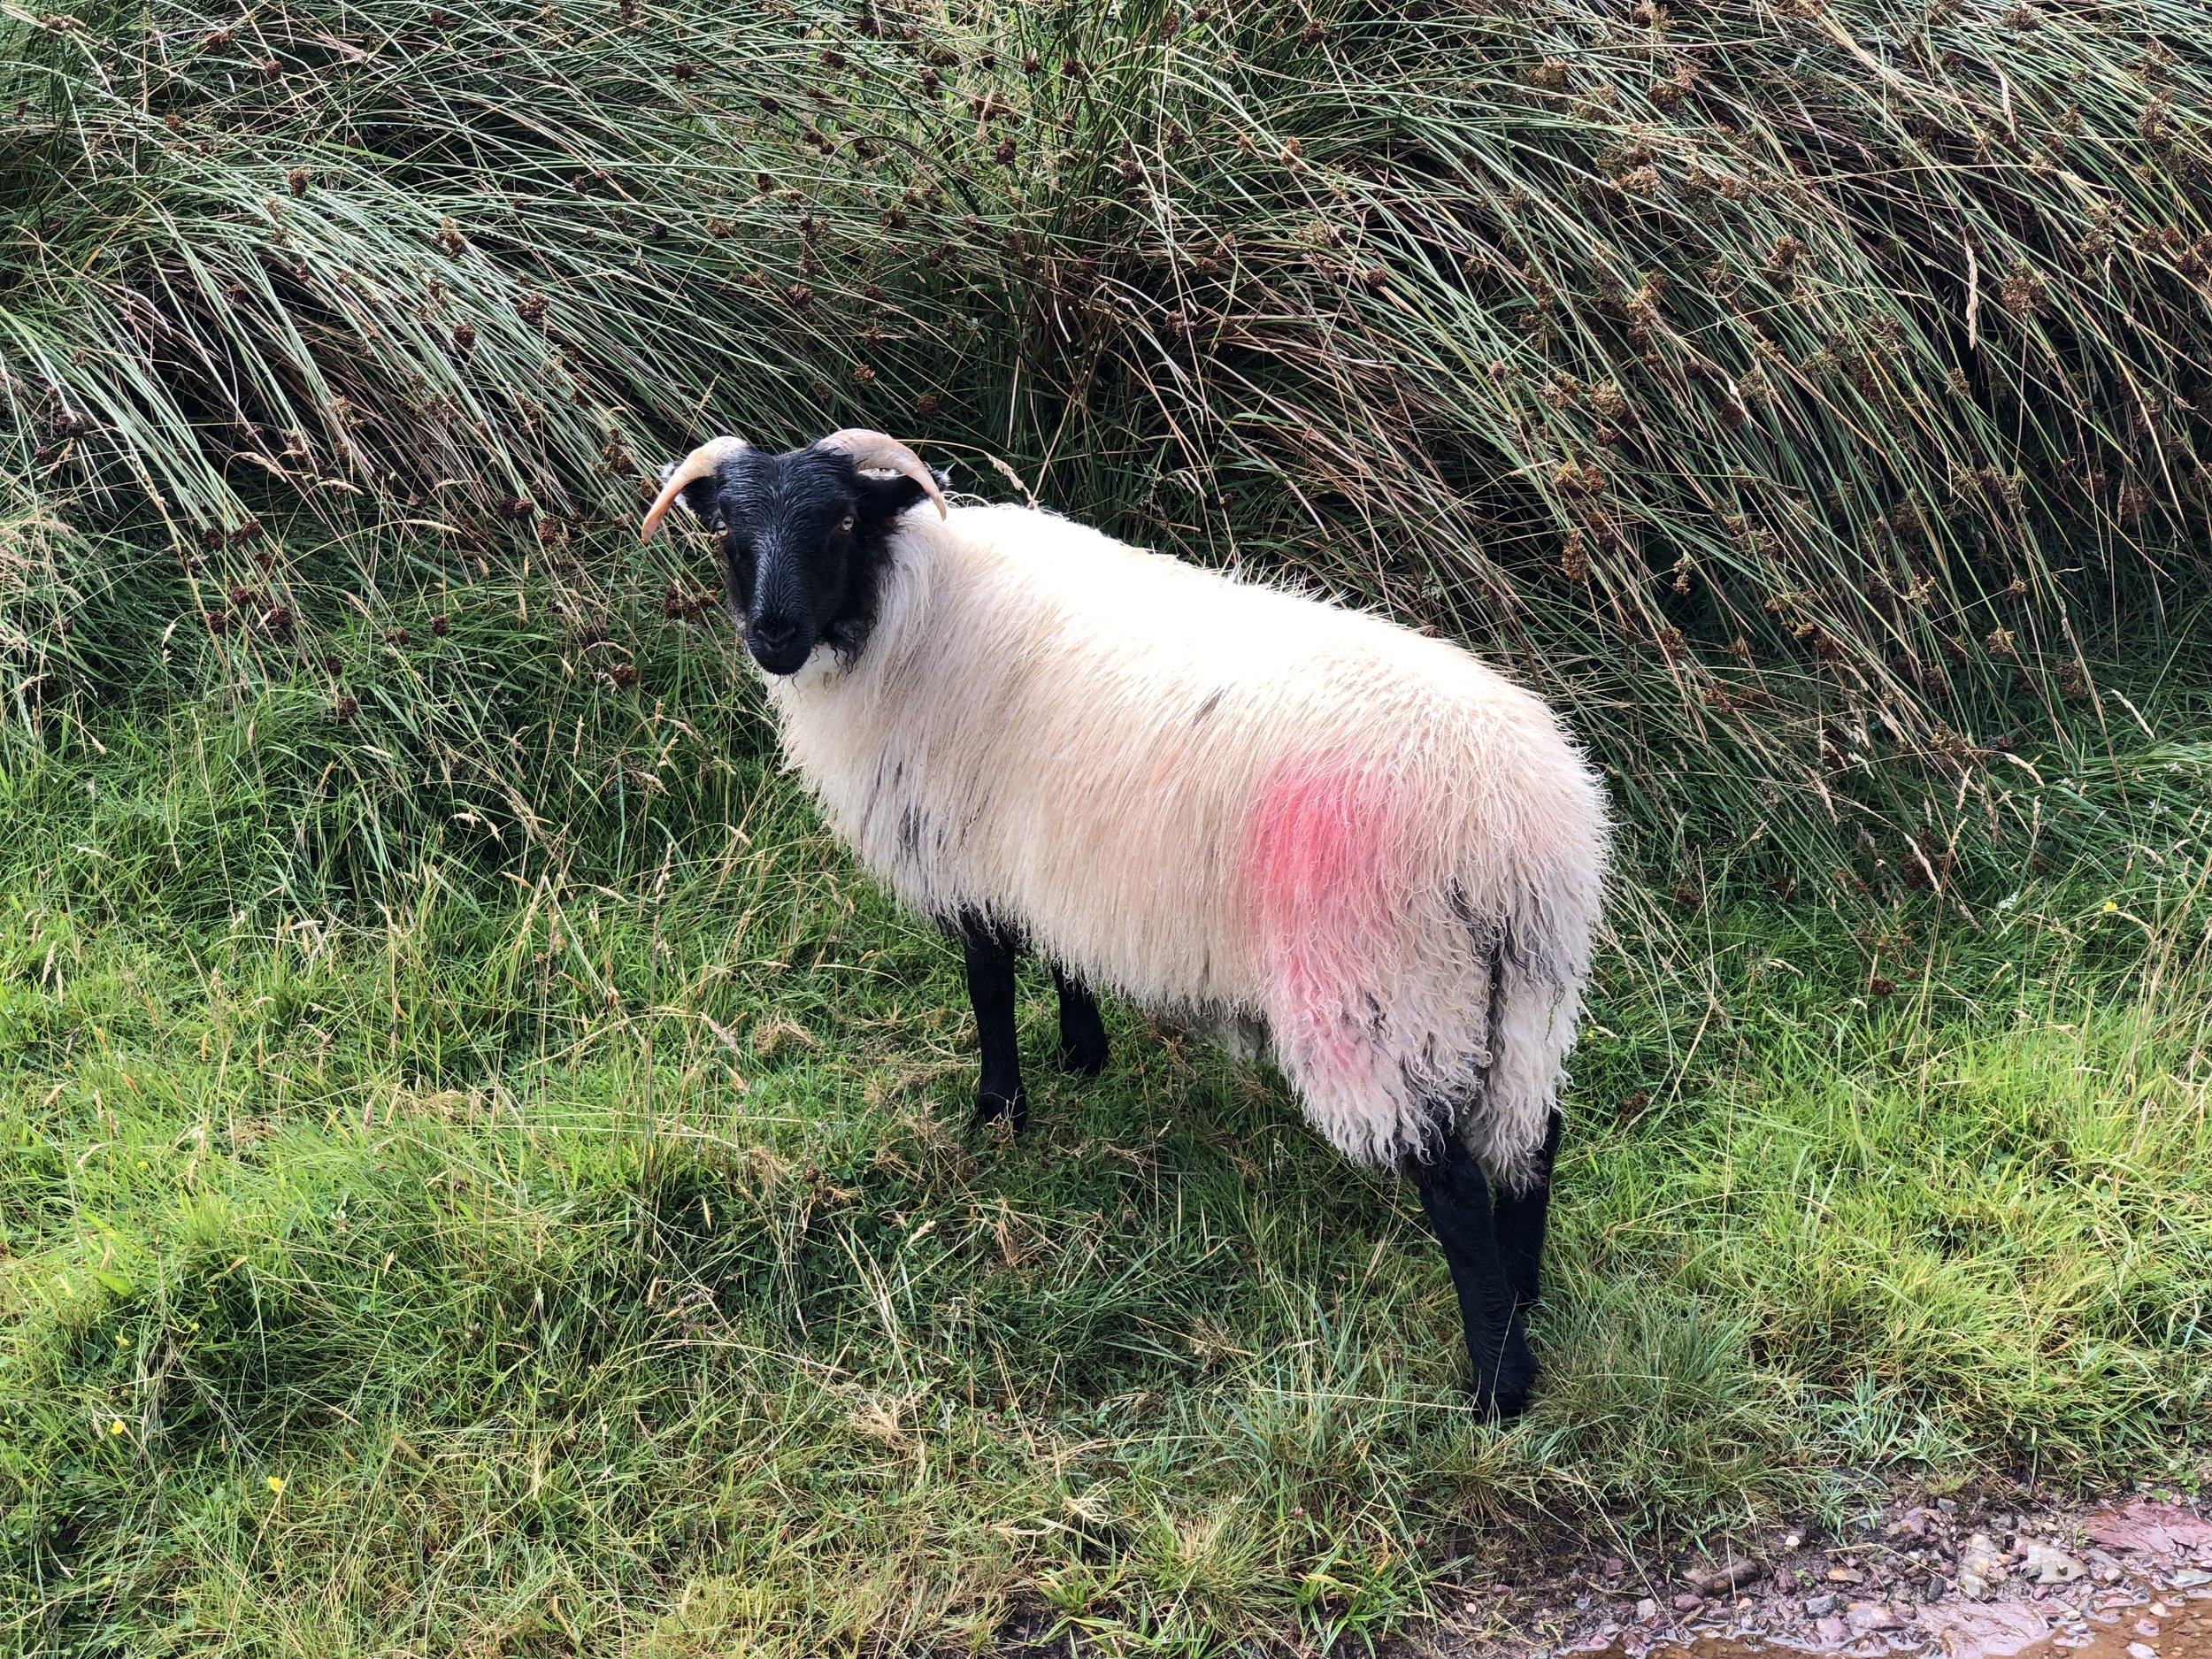 I'm not sure, but I think they spray paint on the sheep to identify their owner.